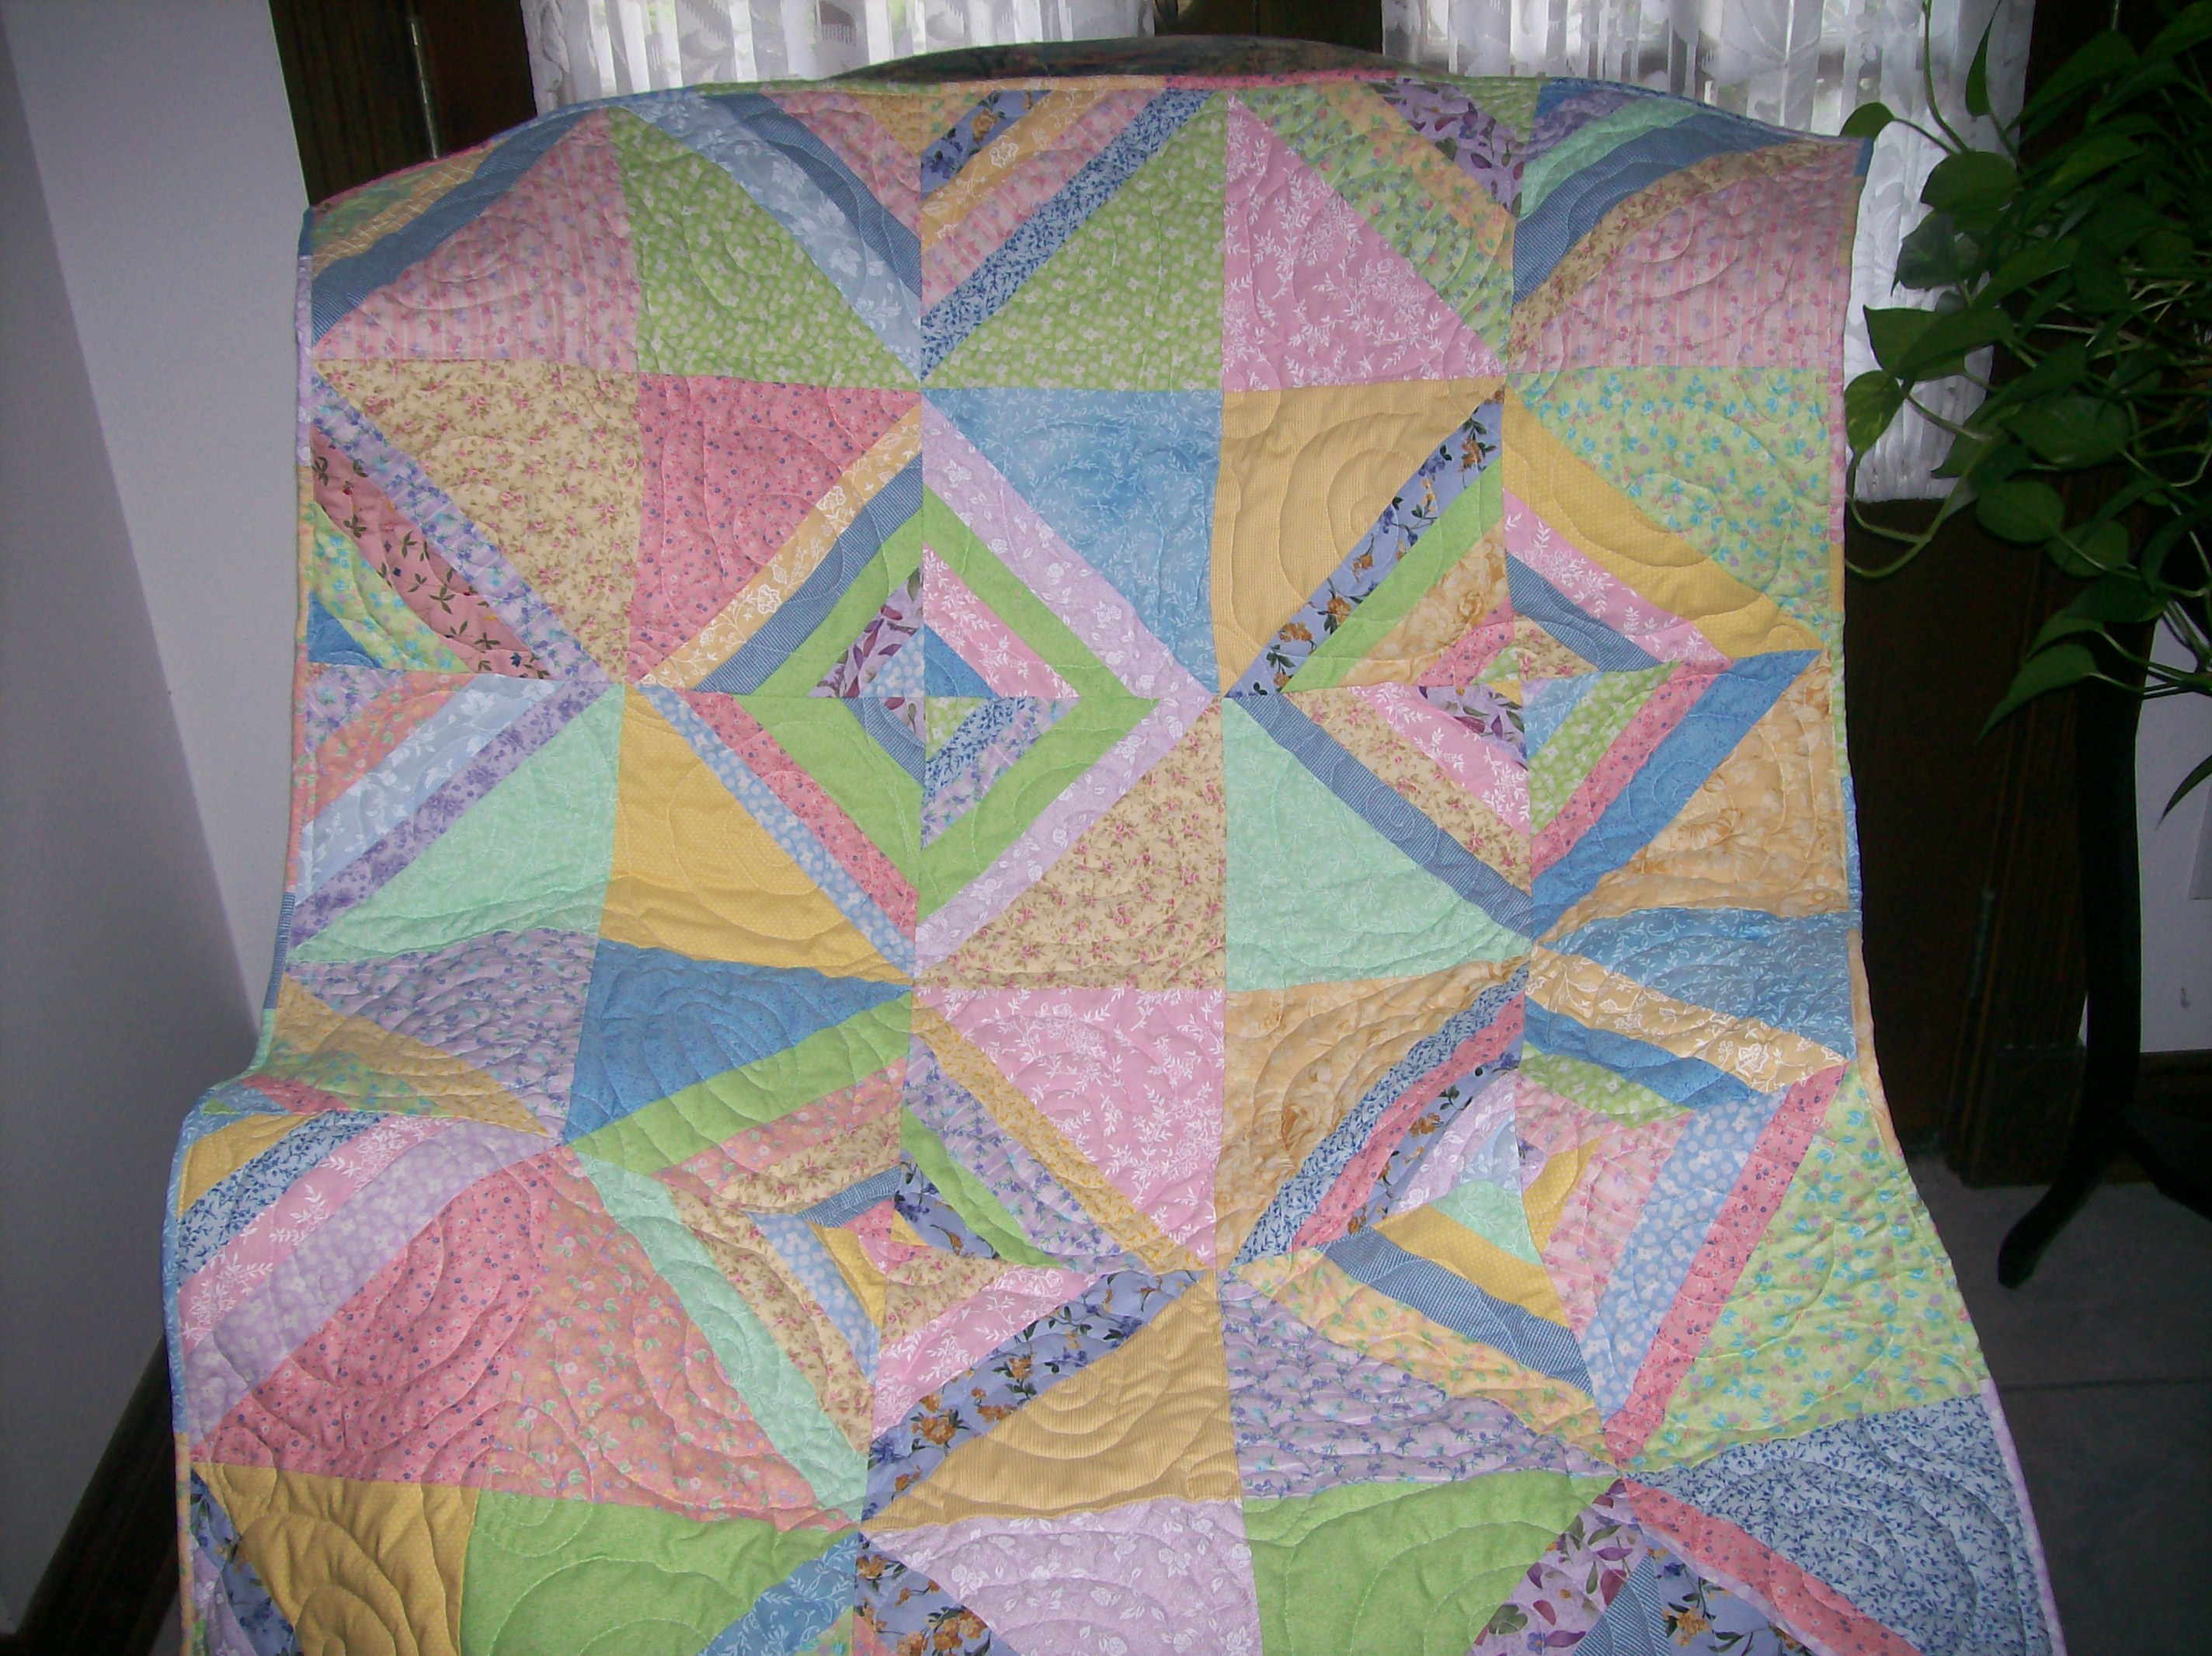 Colorful living room ideas 2016 - Some Worth Diy Baby Quilt To Make For Your Beloved One